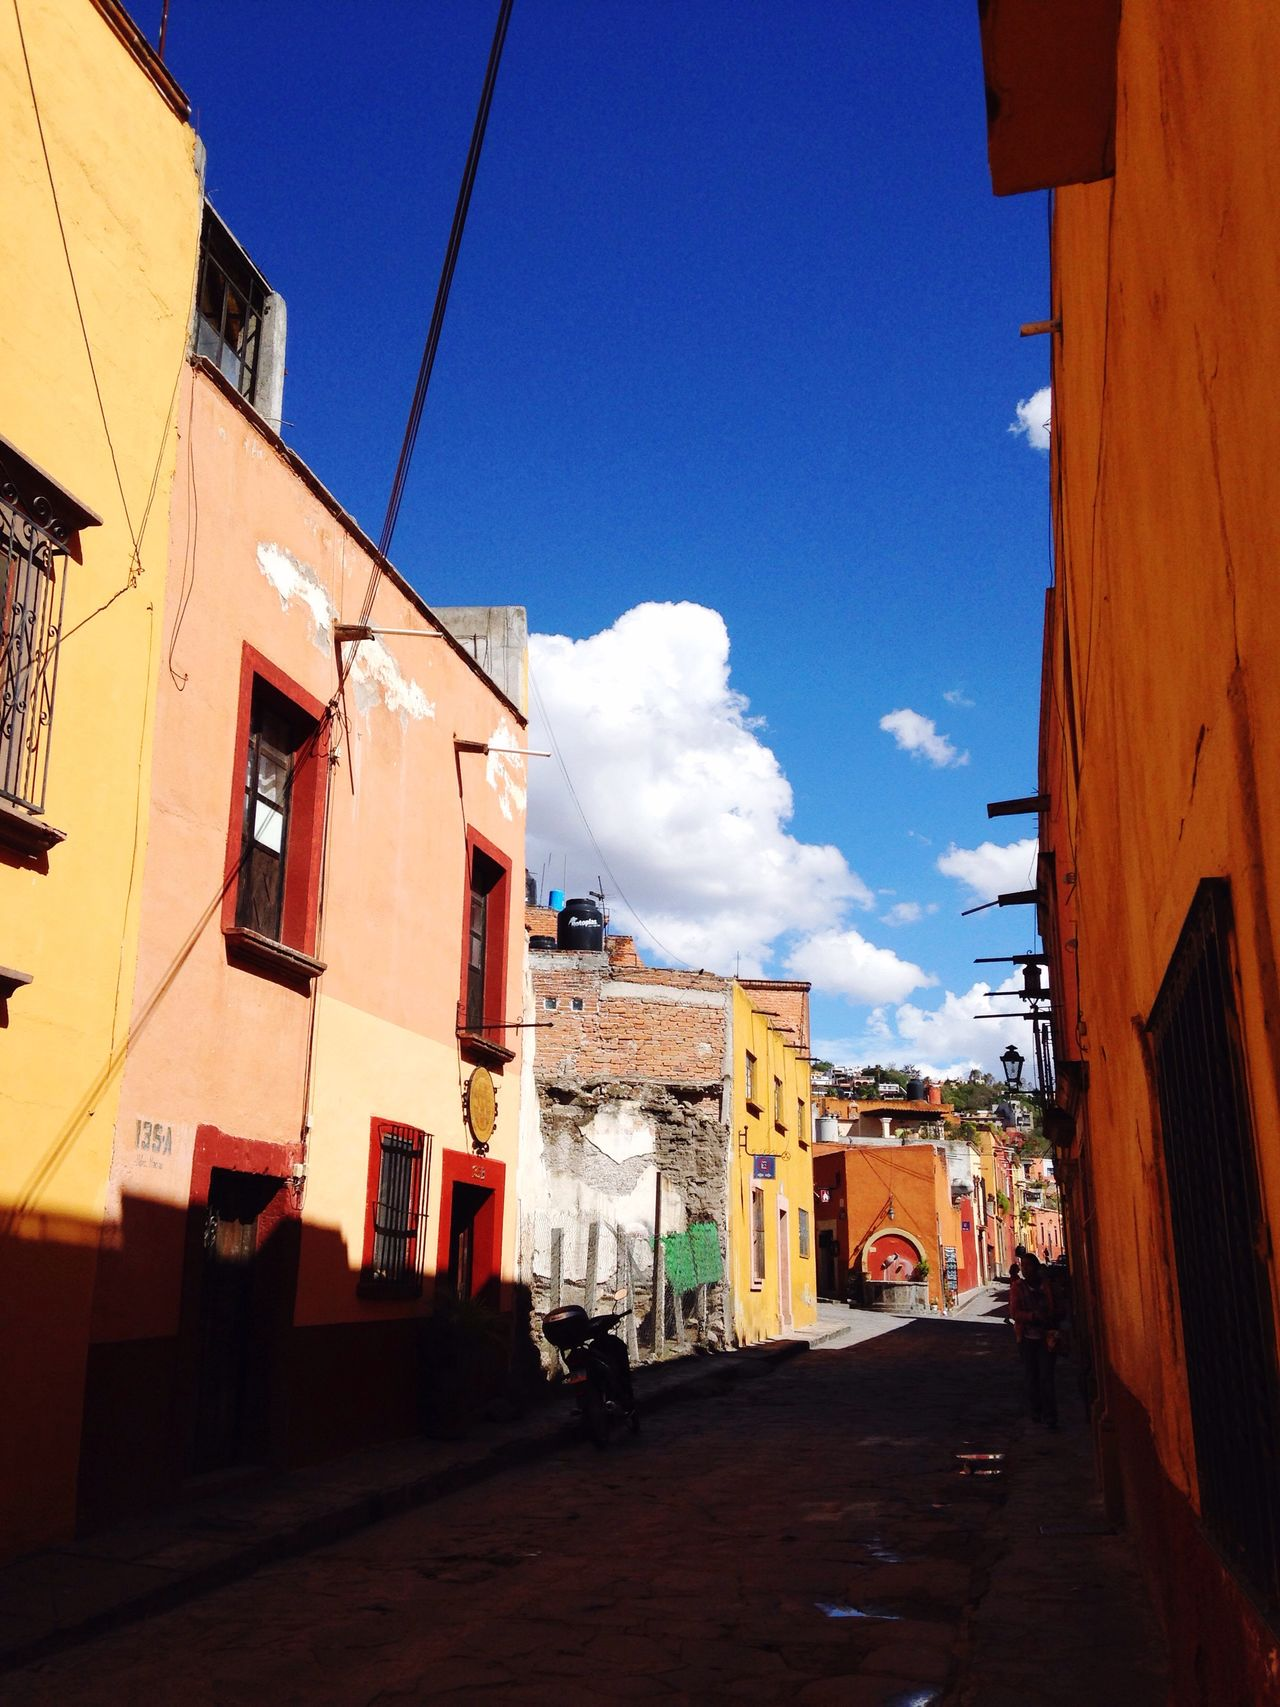 Mexico Small Town Colonial Architecture Colonial Style Colonial Era San Miguel De Allende